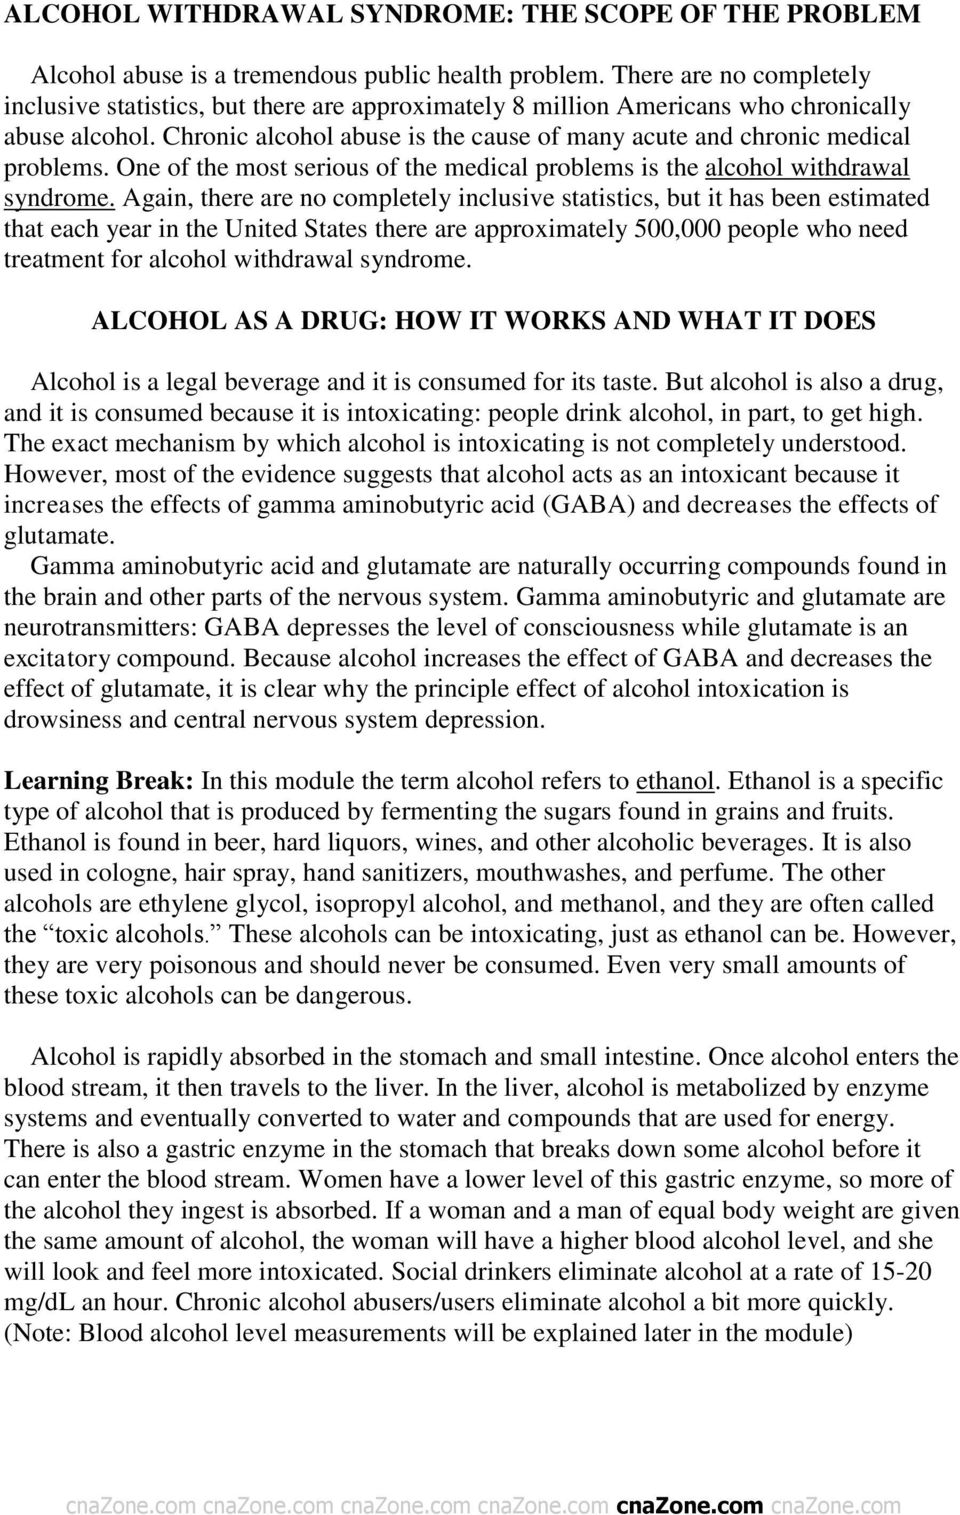 Chronic alcohol abuse is the cause of many acute and chronic medical problems. One of the most serious of the medical problems is the alcohol withdrawal syndrome.